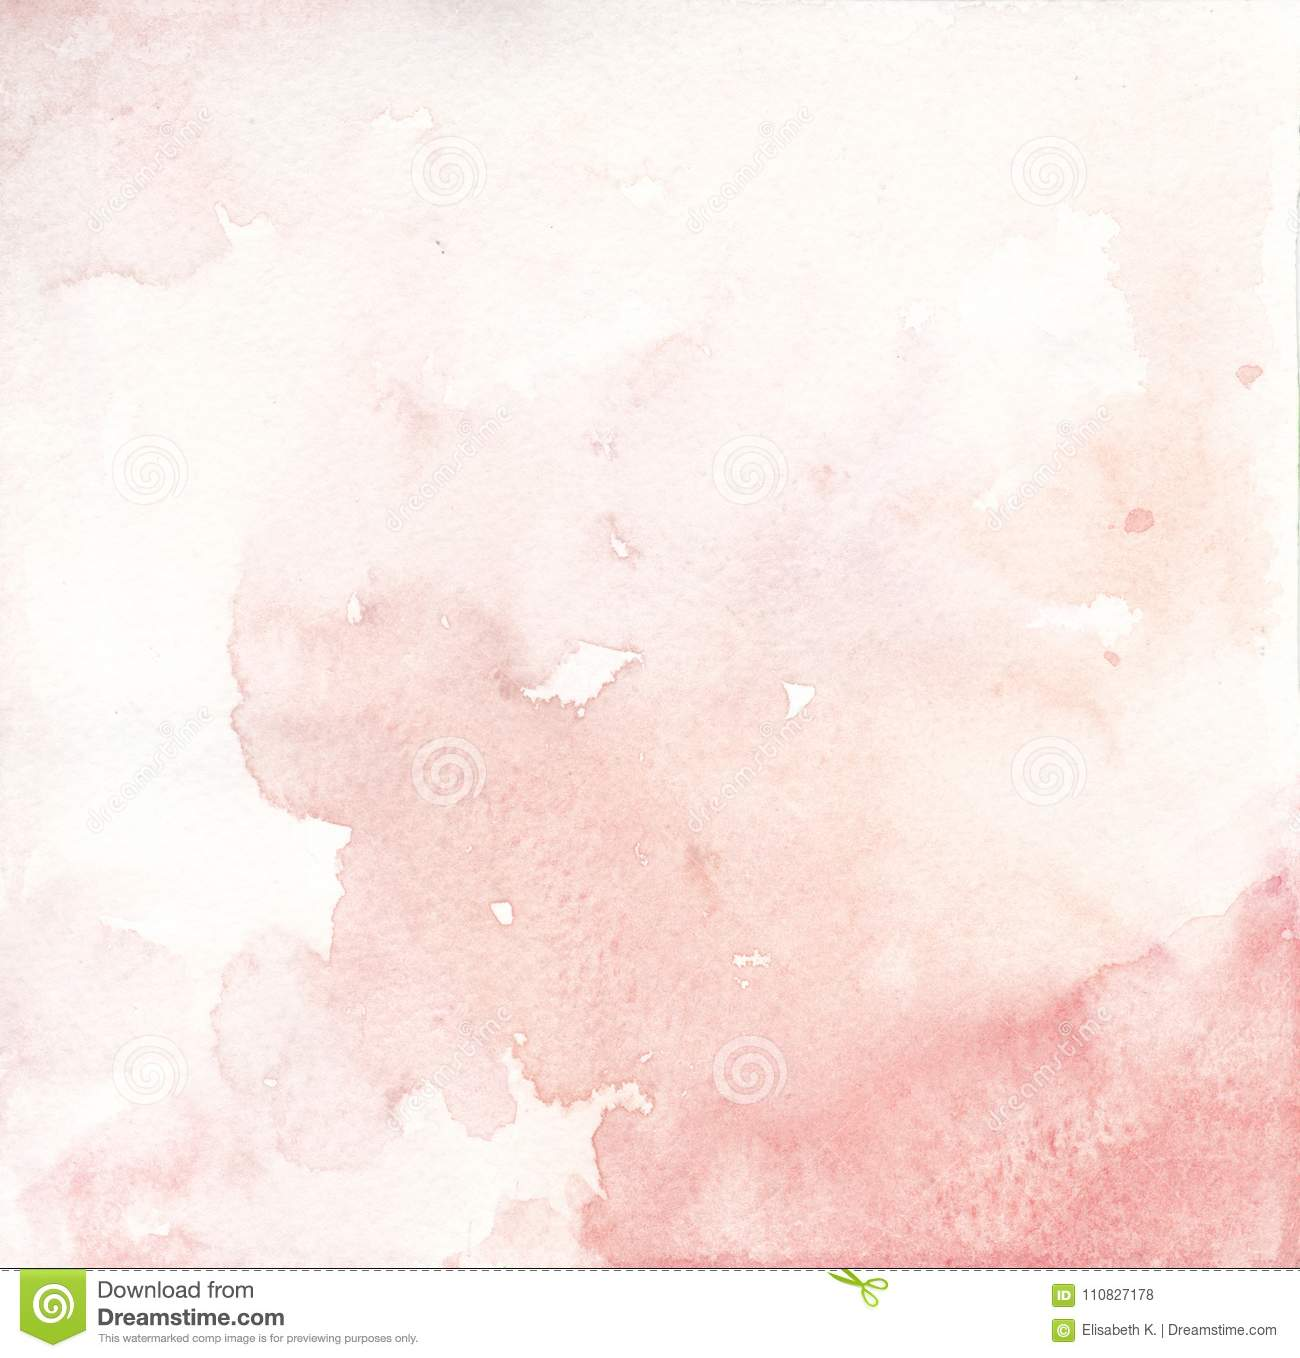 Watercolor pink salmon and coral background texture